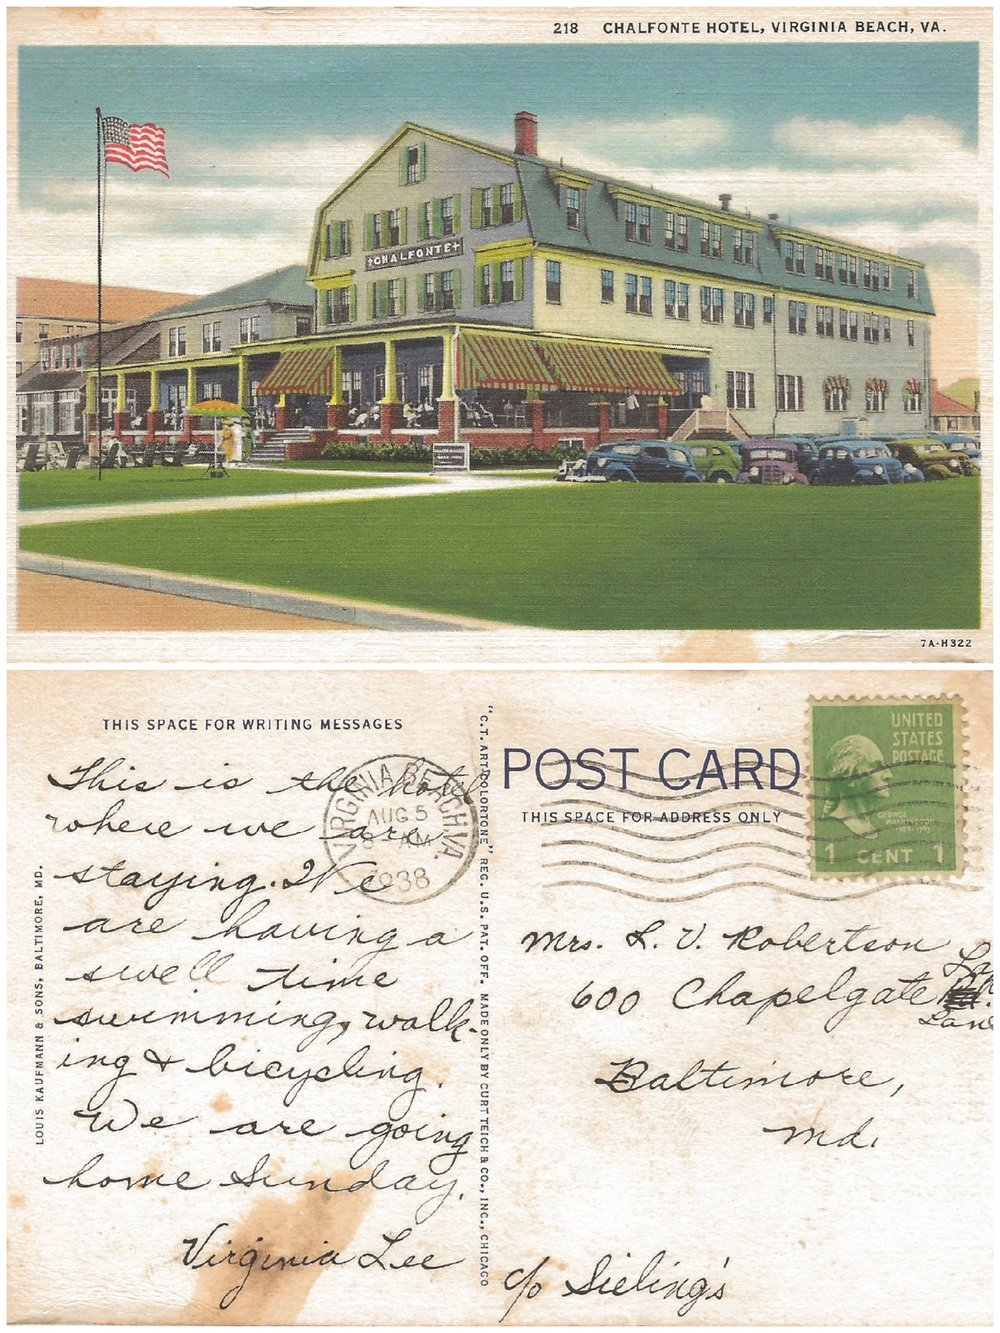 The Chalfonte Hotel (sometimes called the Trafton-Chalfonte) was located at 28th Street and the oceanfront. It was destroyed by fire in 1960. Wonder why Virginia Lee didn't stay at the next hotel, however, when she visited Virginia Beach in 1938?